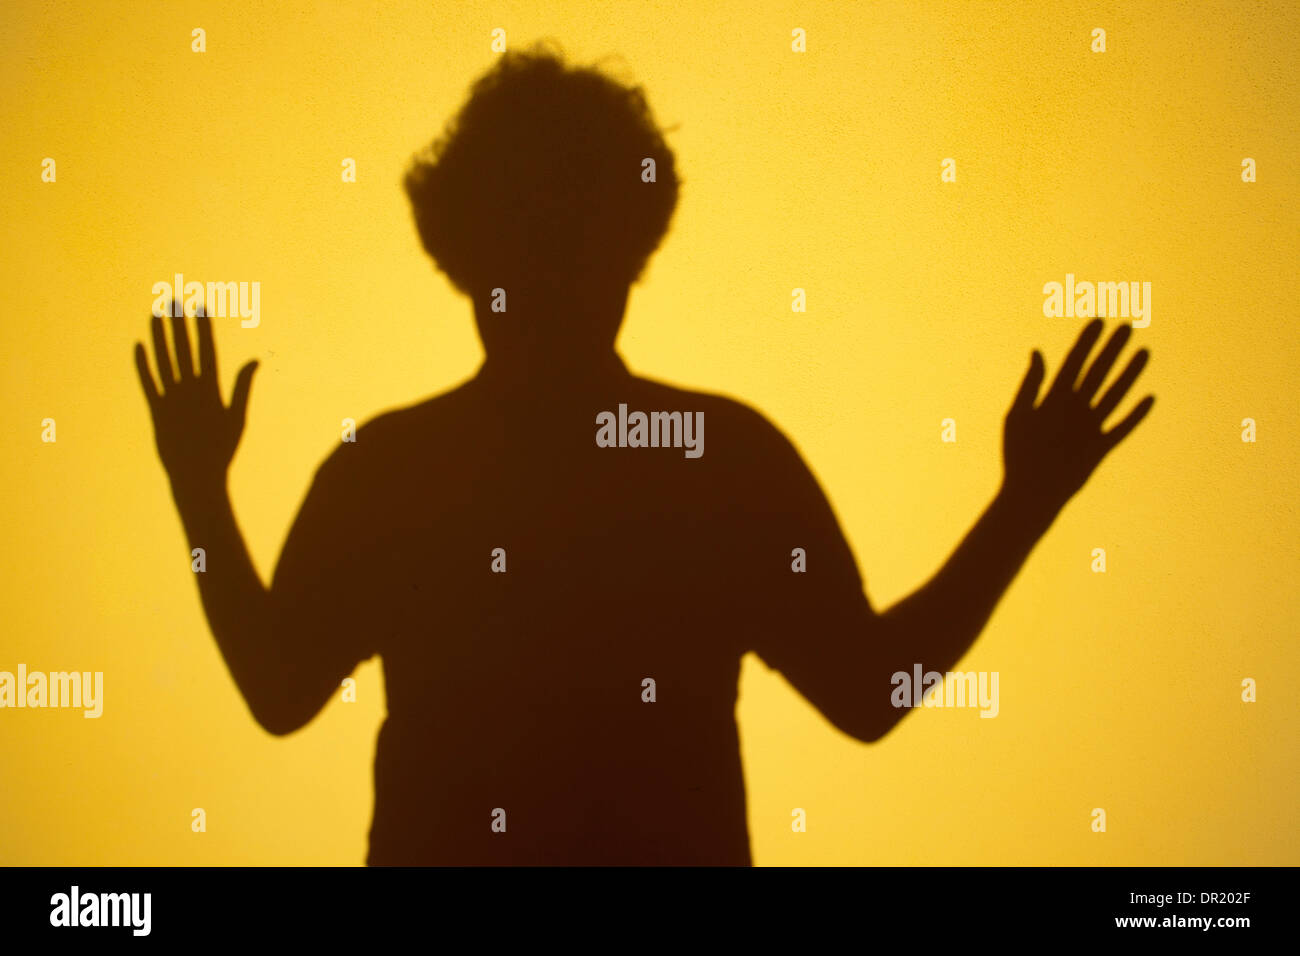 hands up, shadow on a yellow wall, italy, europe - Stock Image